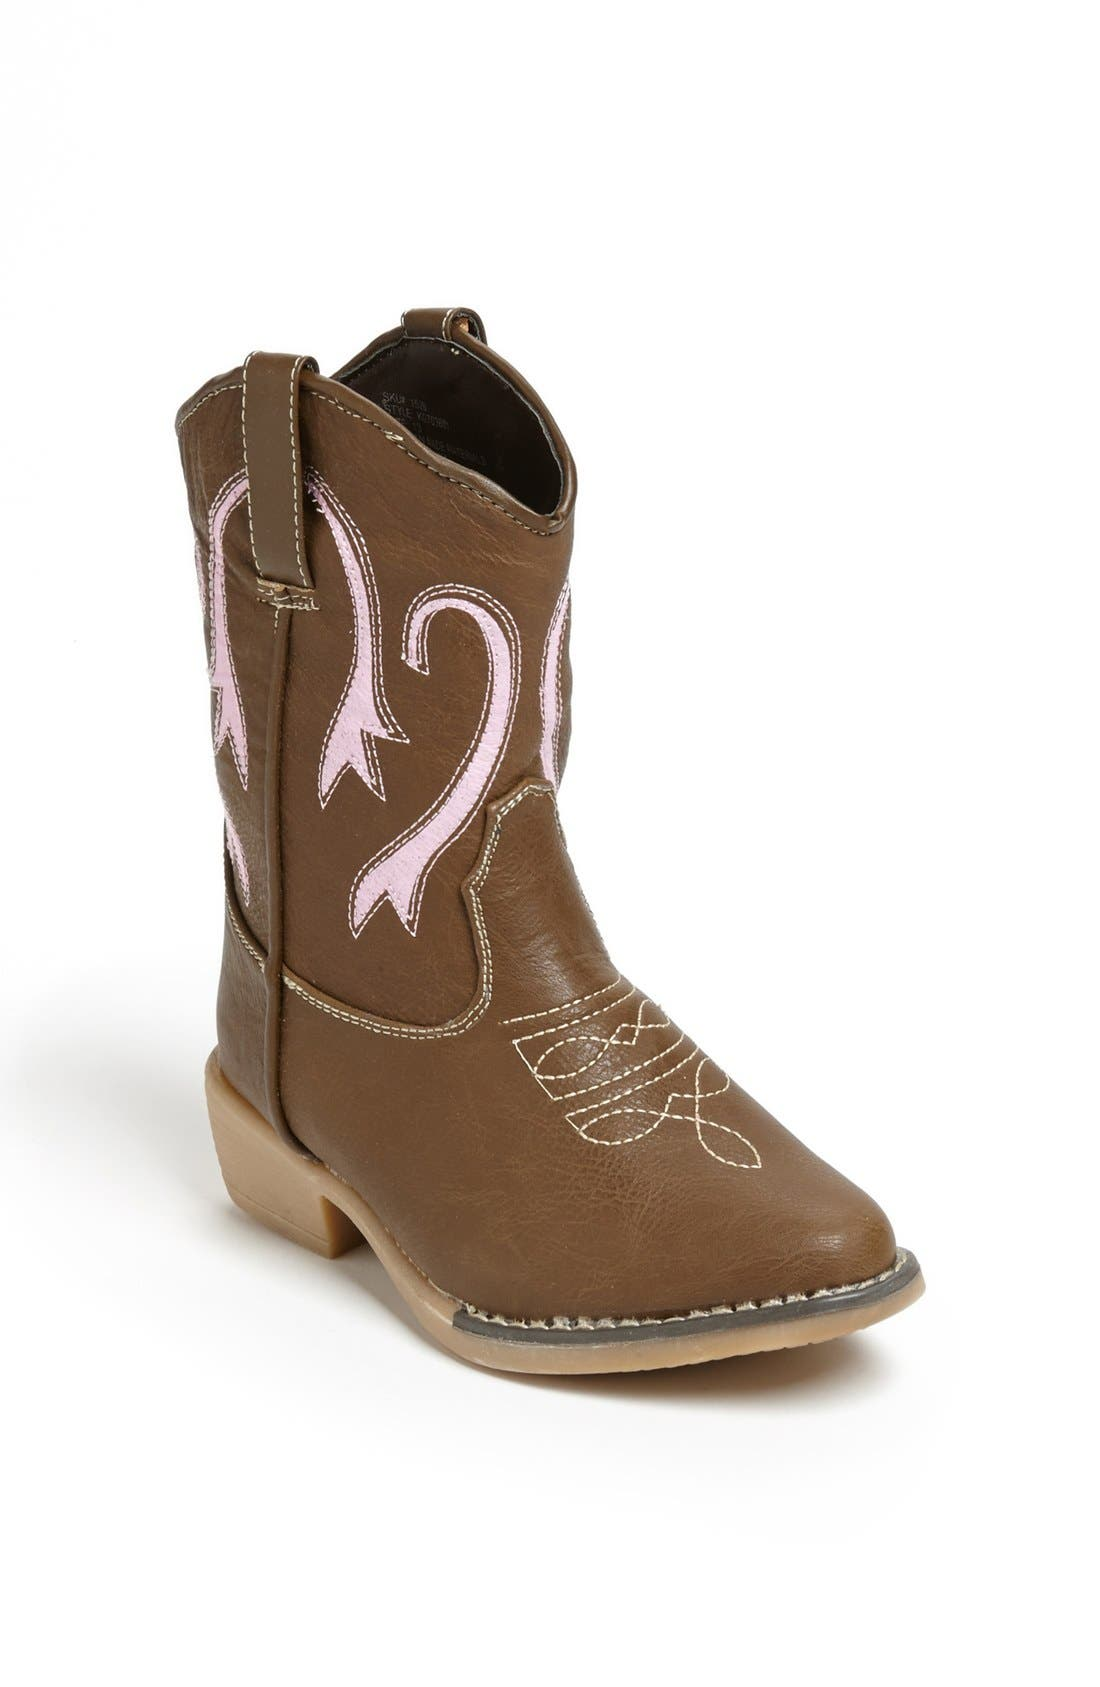 Kensie Girl Girls Western Cowboy Boot BROWN Size 1 Little Girl/' Shoes